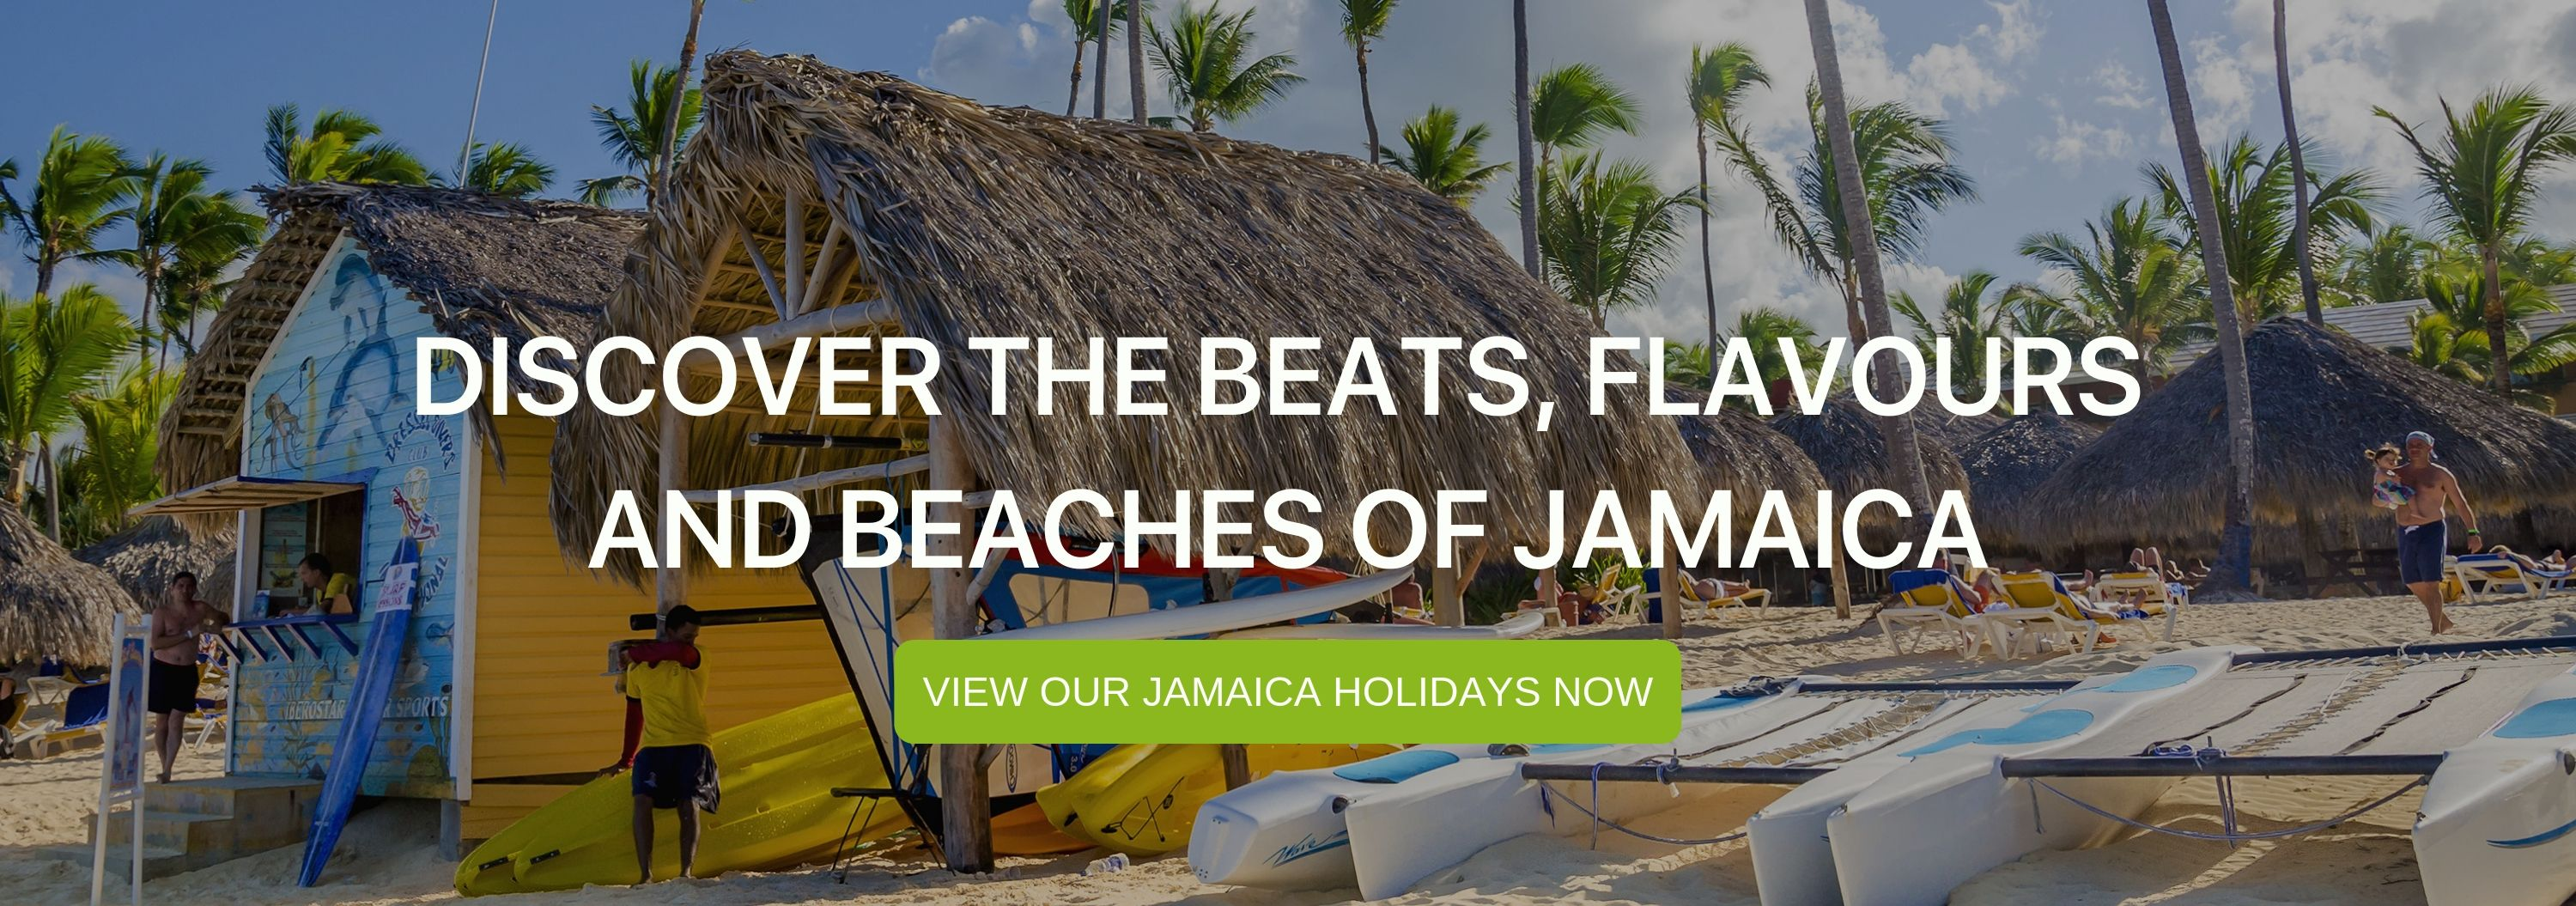 "A banner that says ""Discover the beats,. flavours, and beaches of Jamaica"""